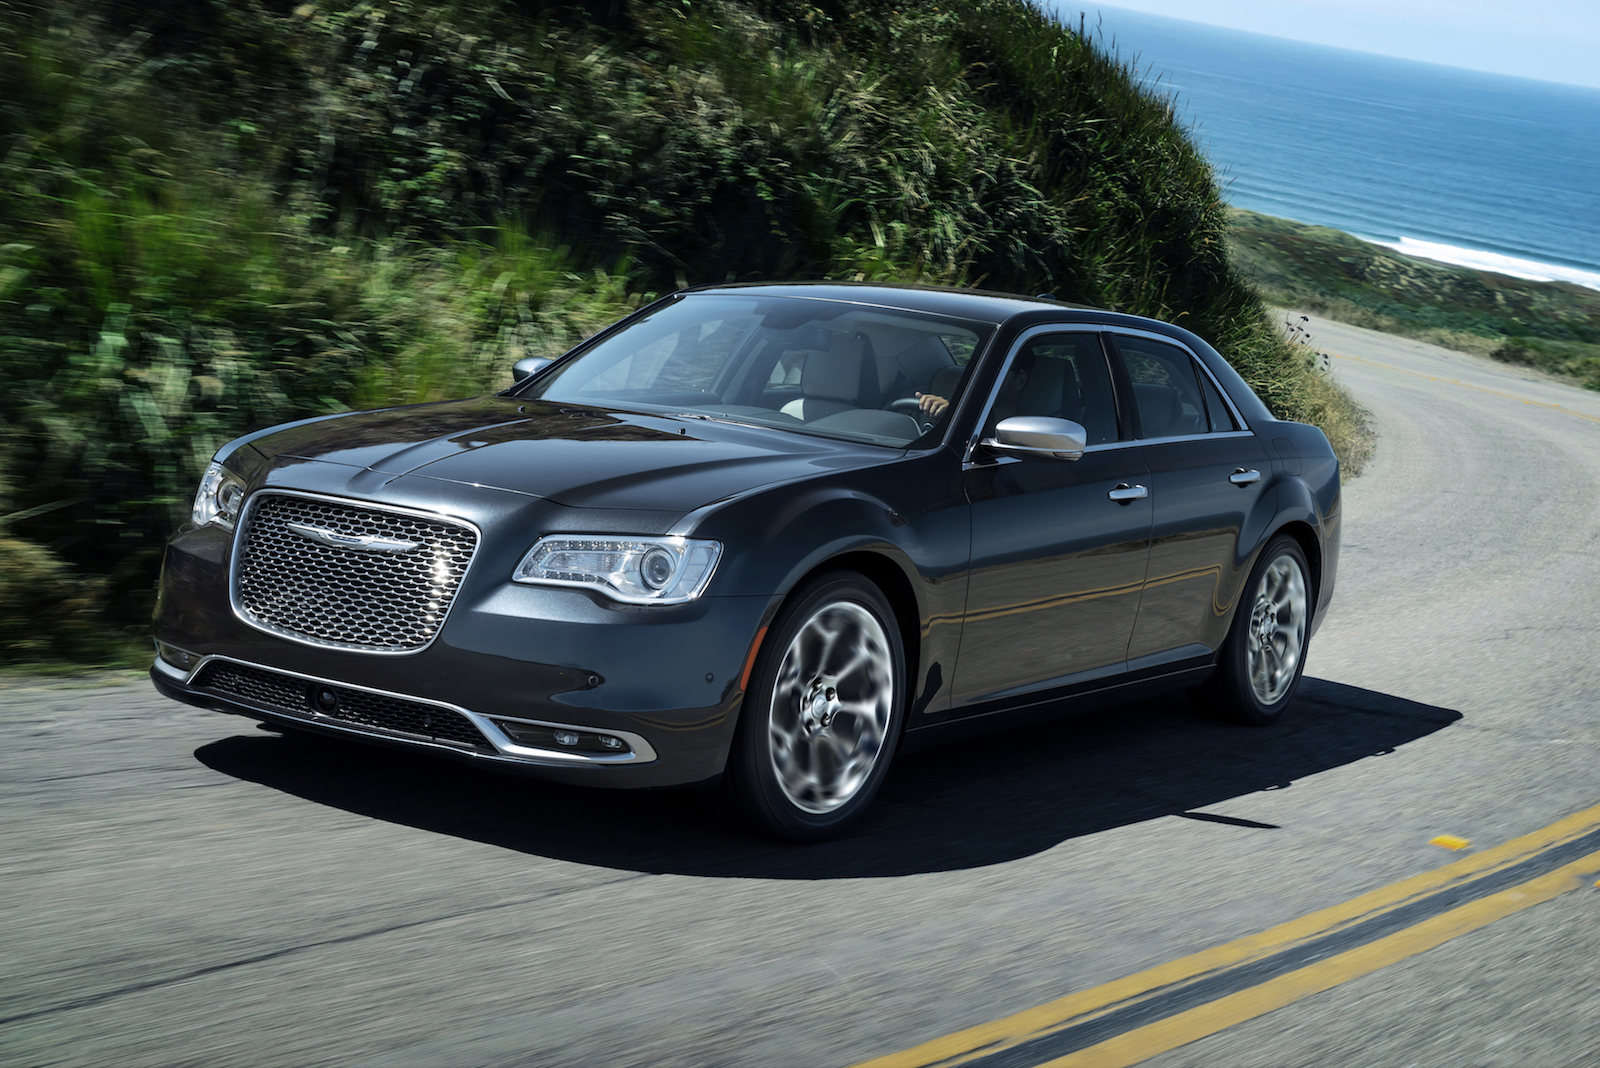 2017 Chrysler 300 Quality Review The Car Connection